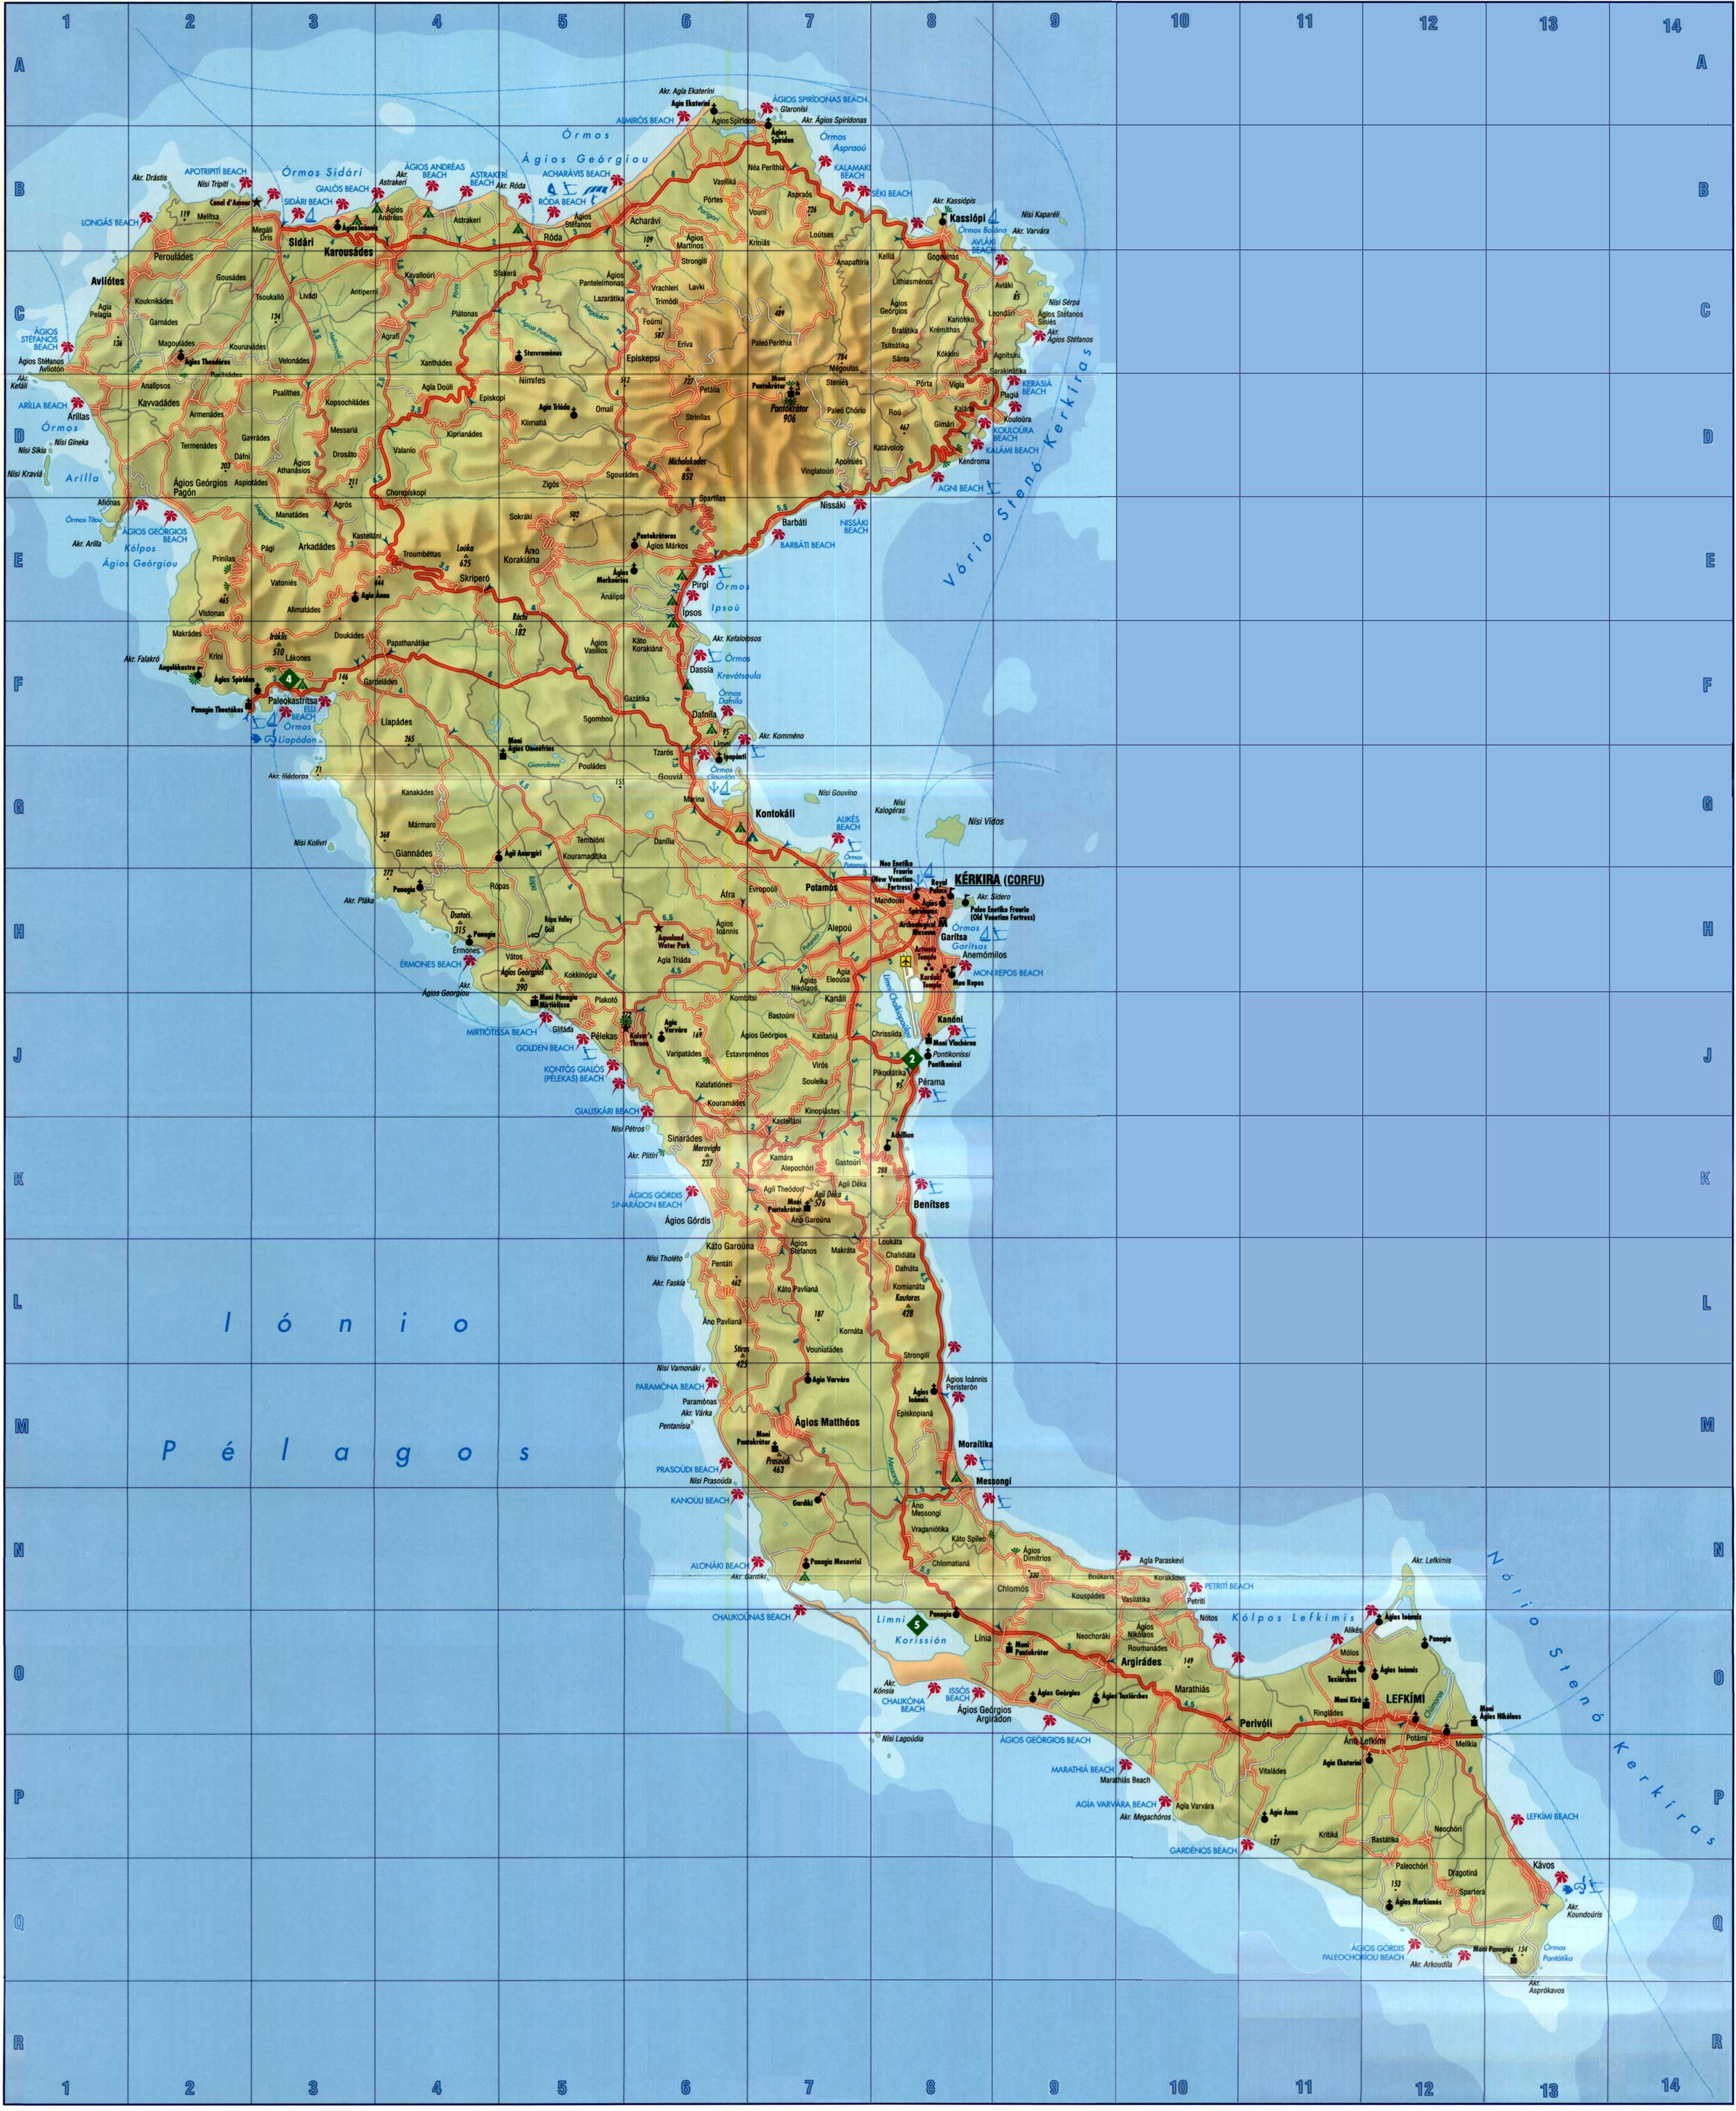 Large Corfu Maps For Free Download And Print HighResolution And - High resolution us road map